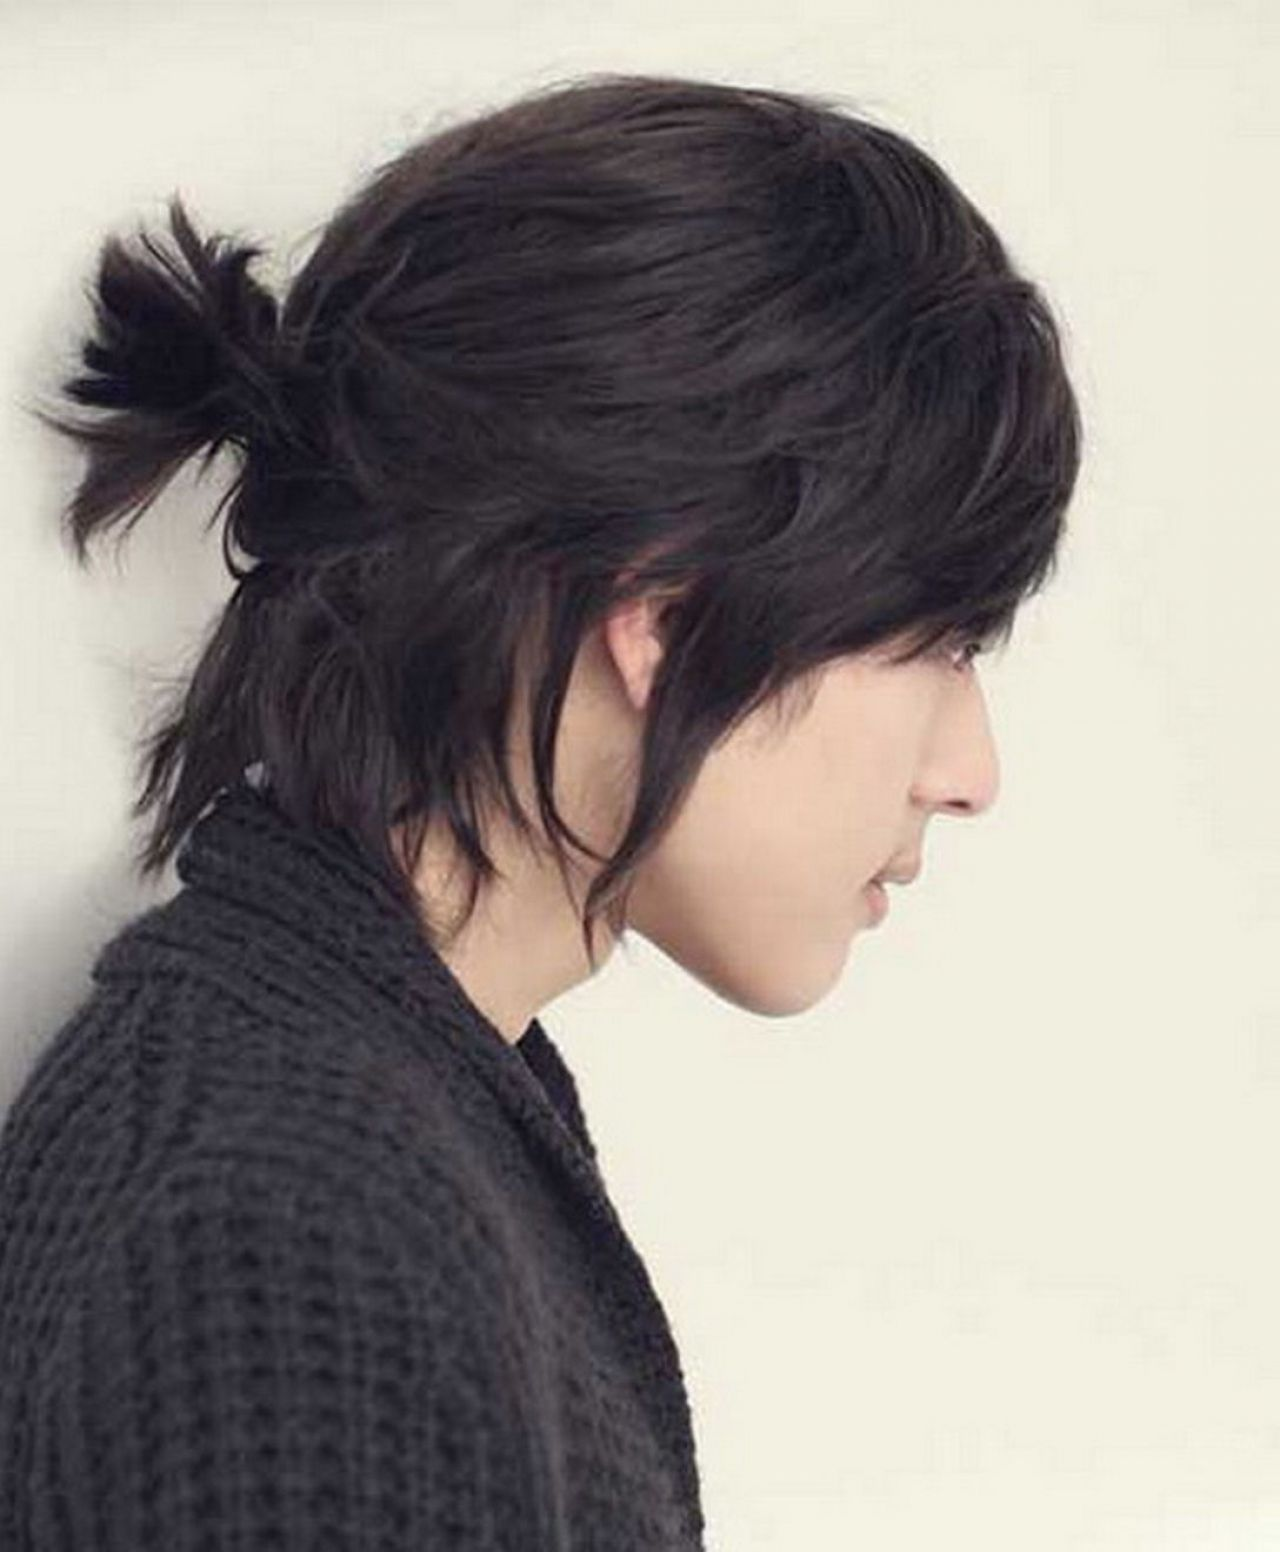 long hairstyles for asian men nvcoj52hj | inspiration, in